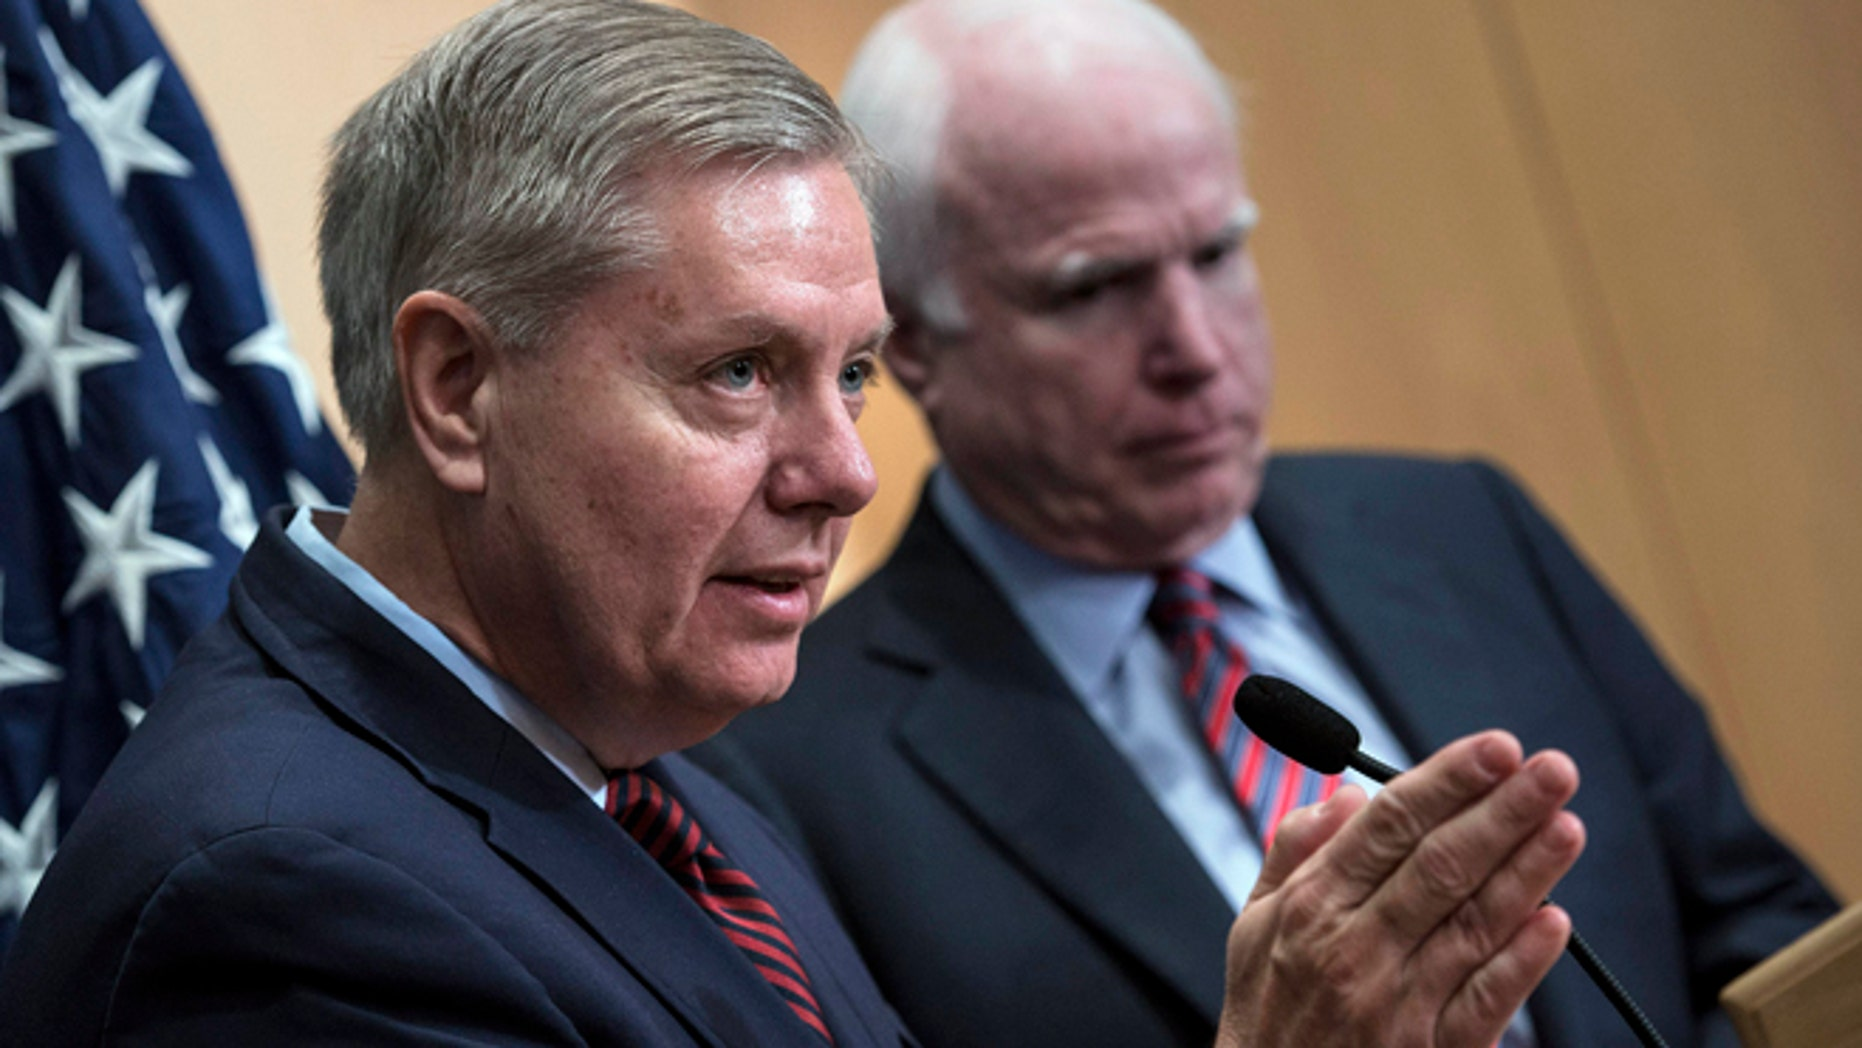 Jan. 3, 2014: Sen. Lindsey Graham, R-S.C., left, speaks near Sen. John McCain, R-Ariz., during a news conference at the David Citadel hotel in Jerusalem.